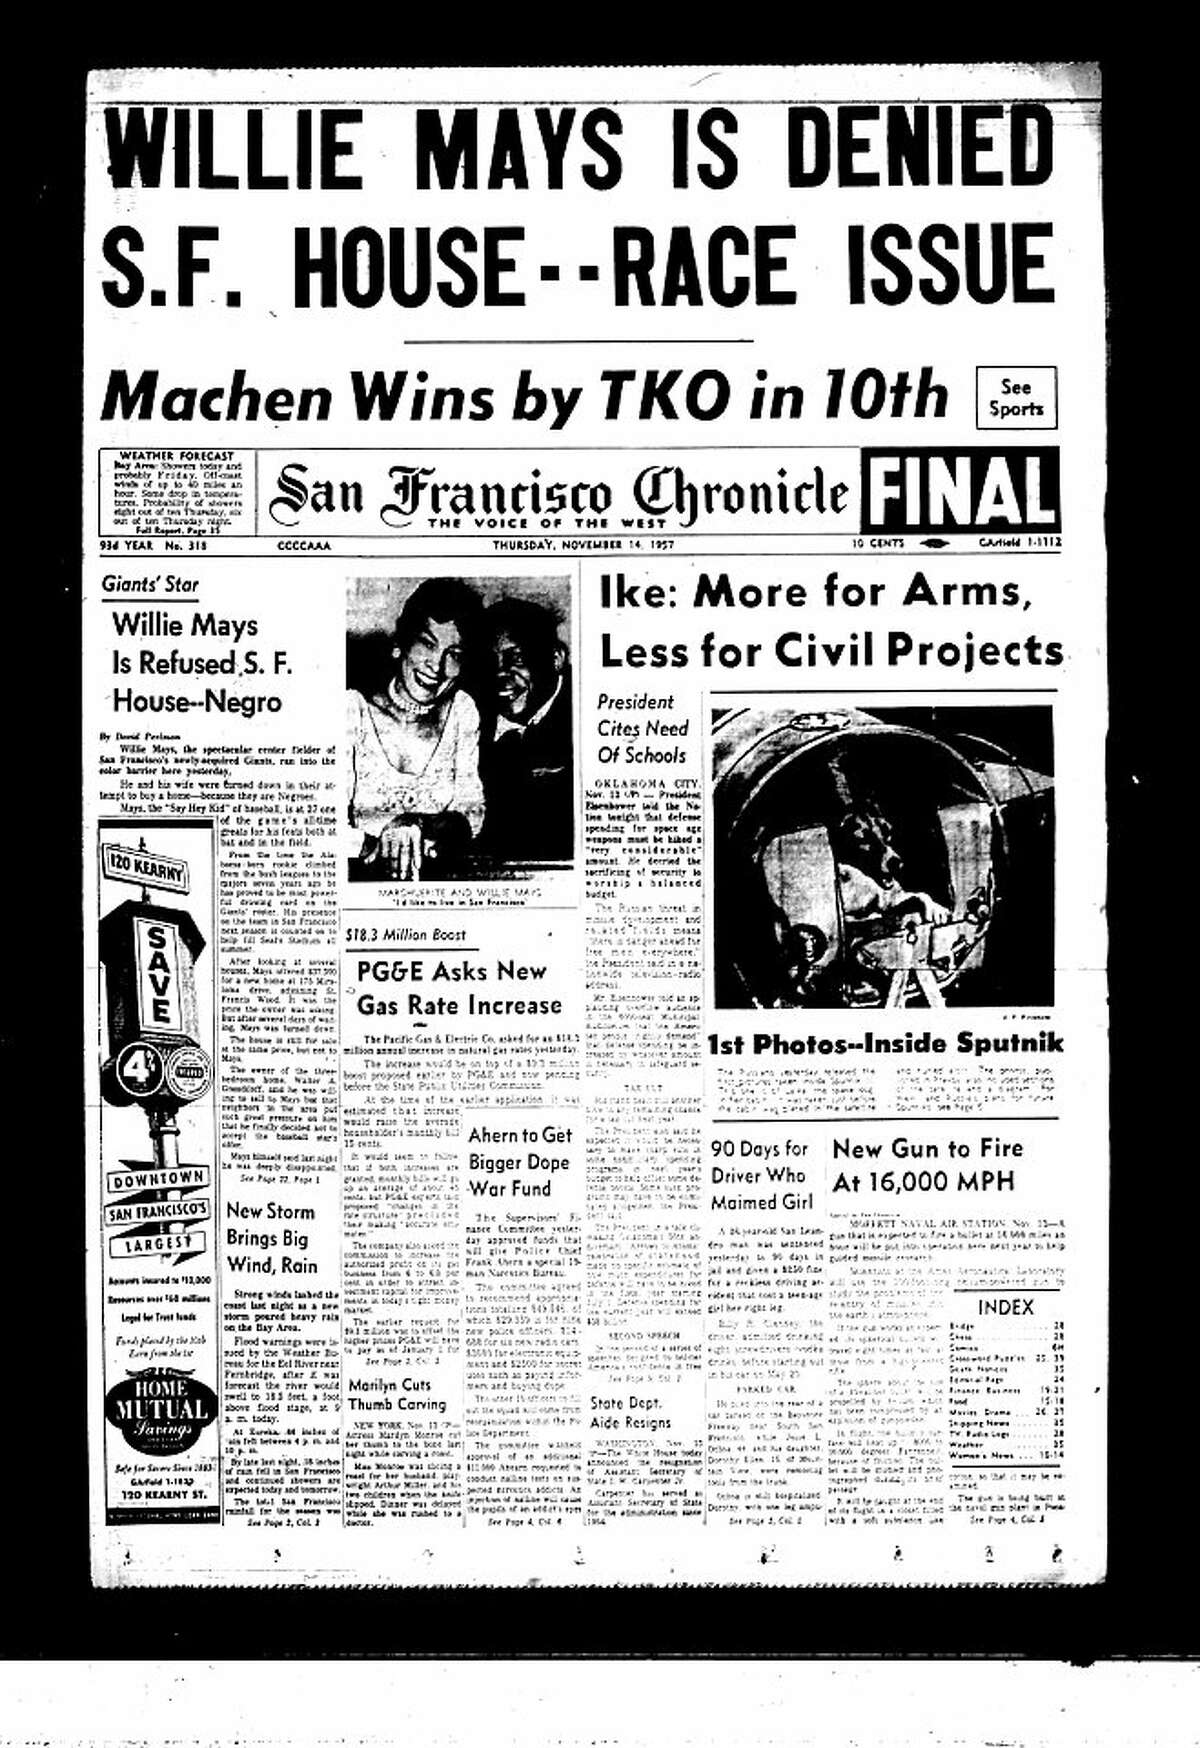 San Francisco Chronicle front page from 1957, with Willie Mays being denied a house in SF.